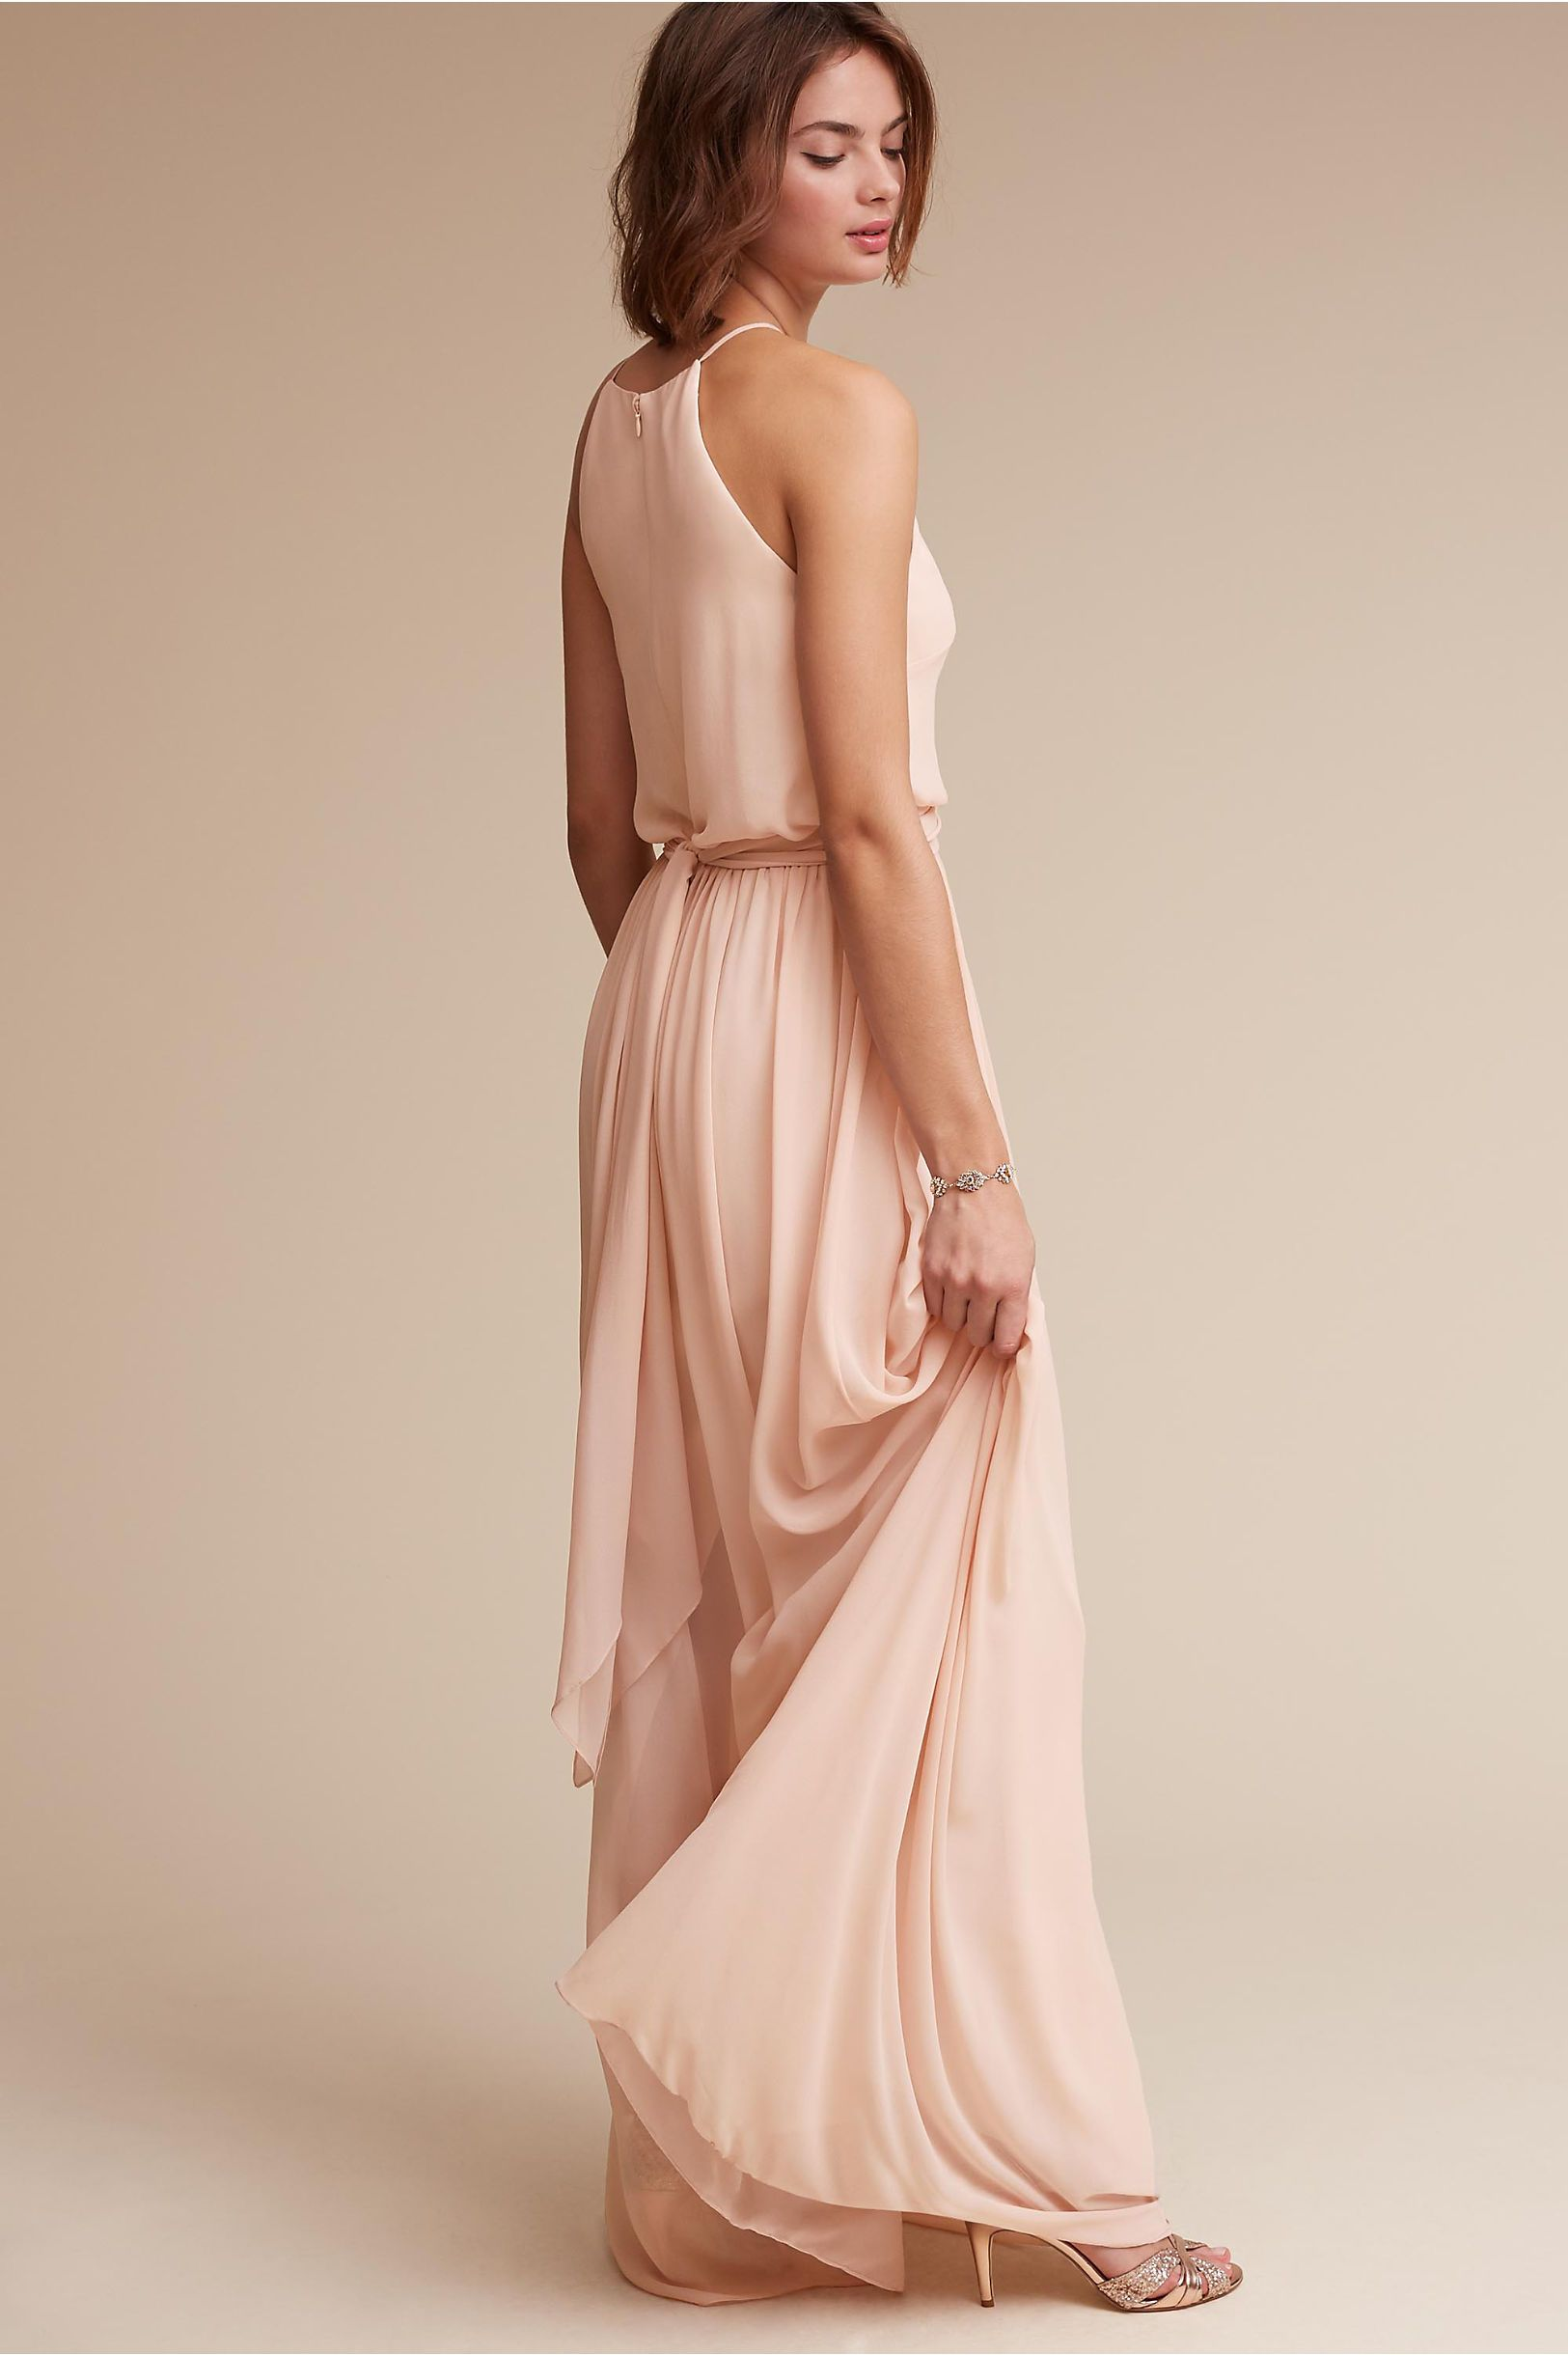 bc99ad3b6a BHLDN Alana Dress in Bridal Party View All Dresses